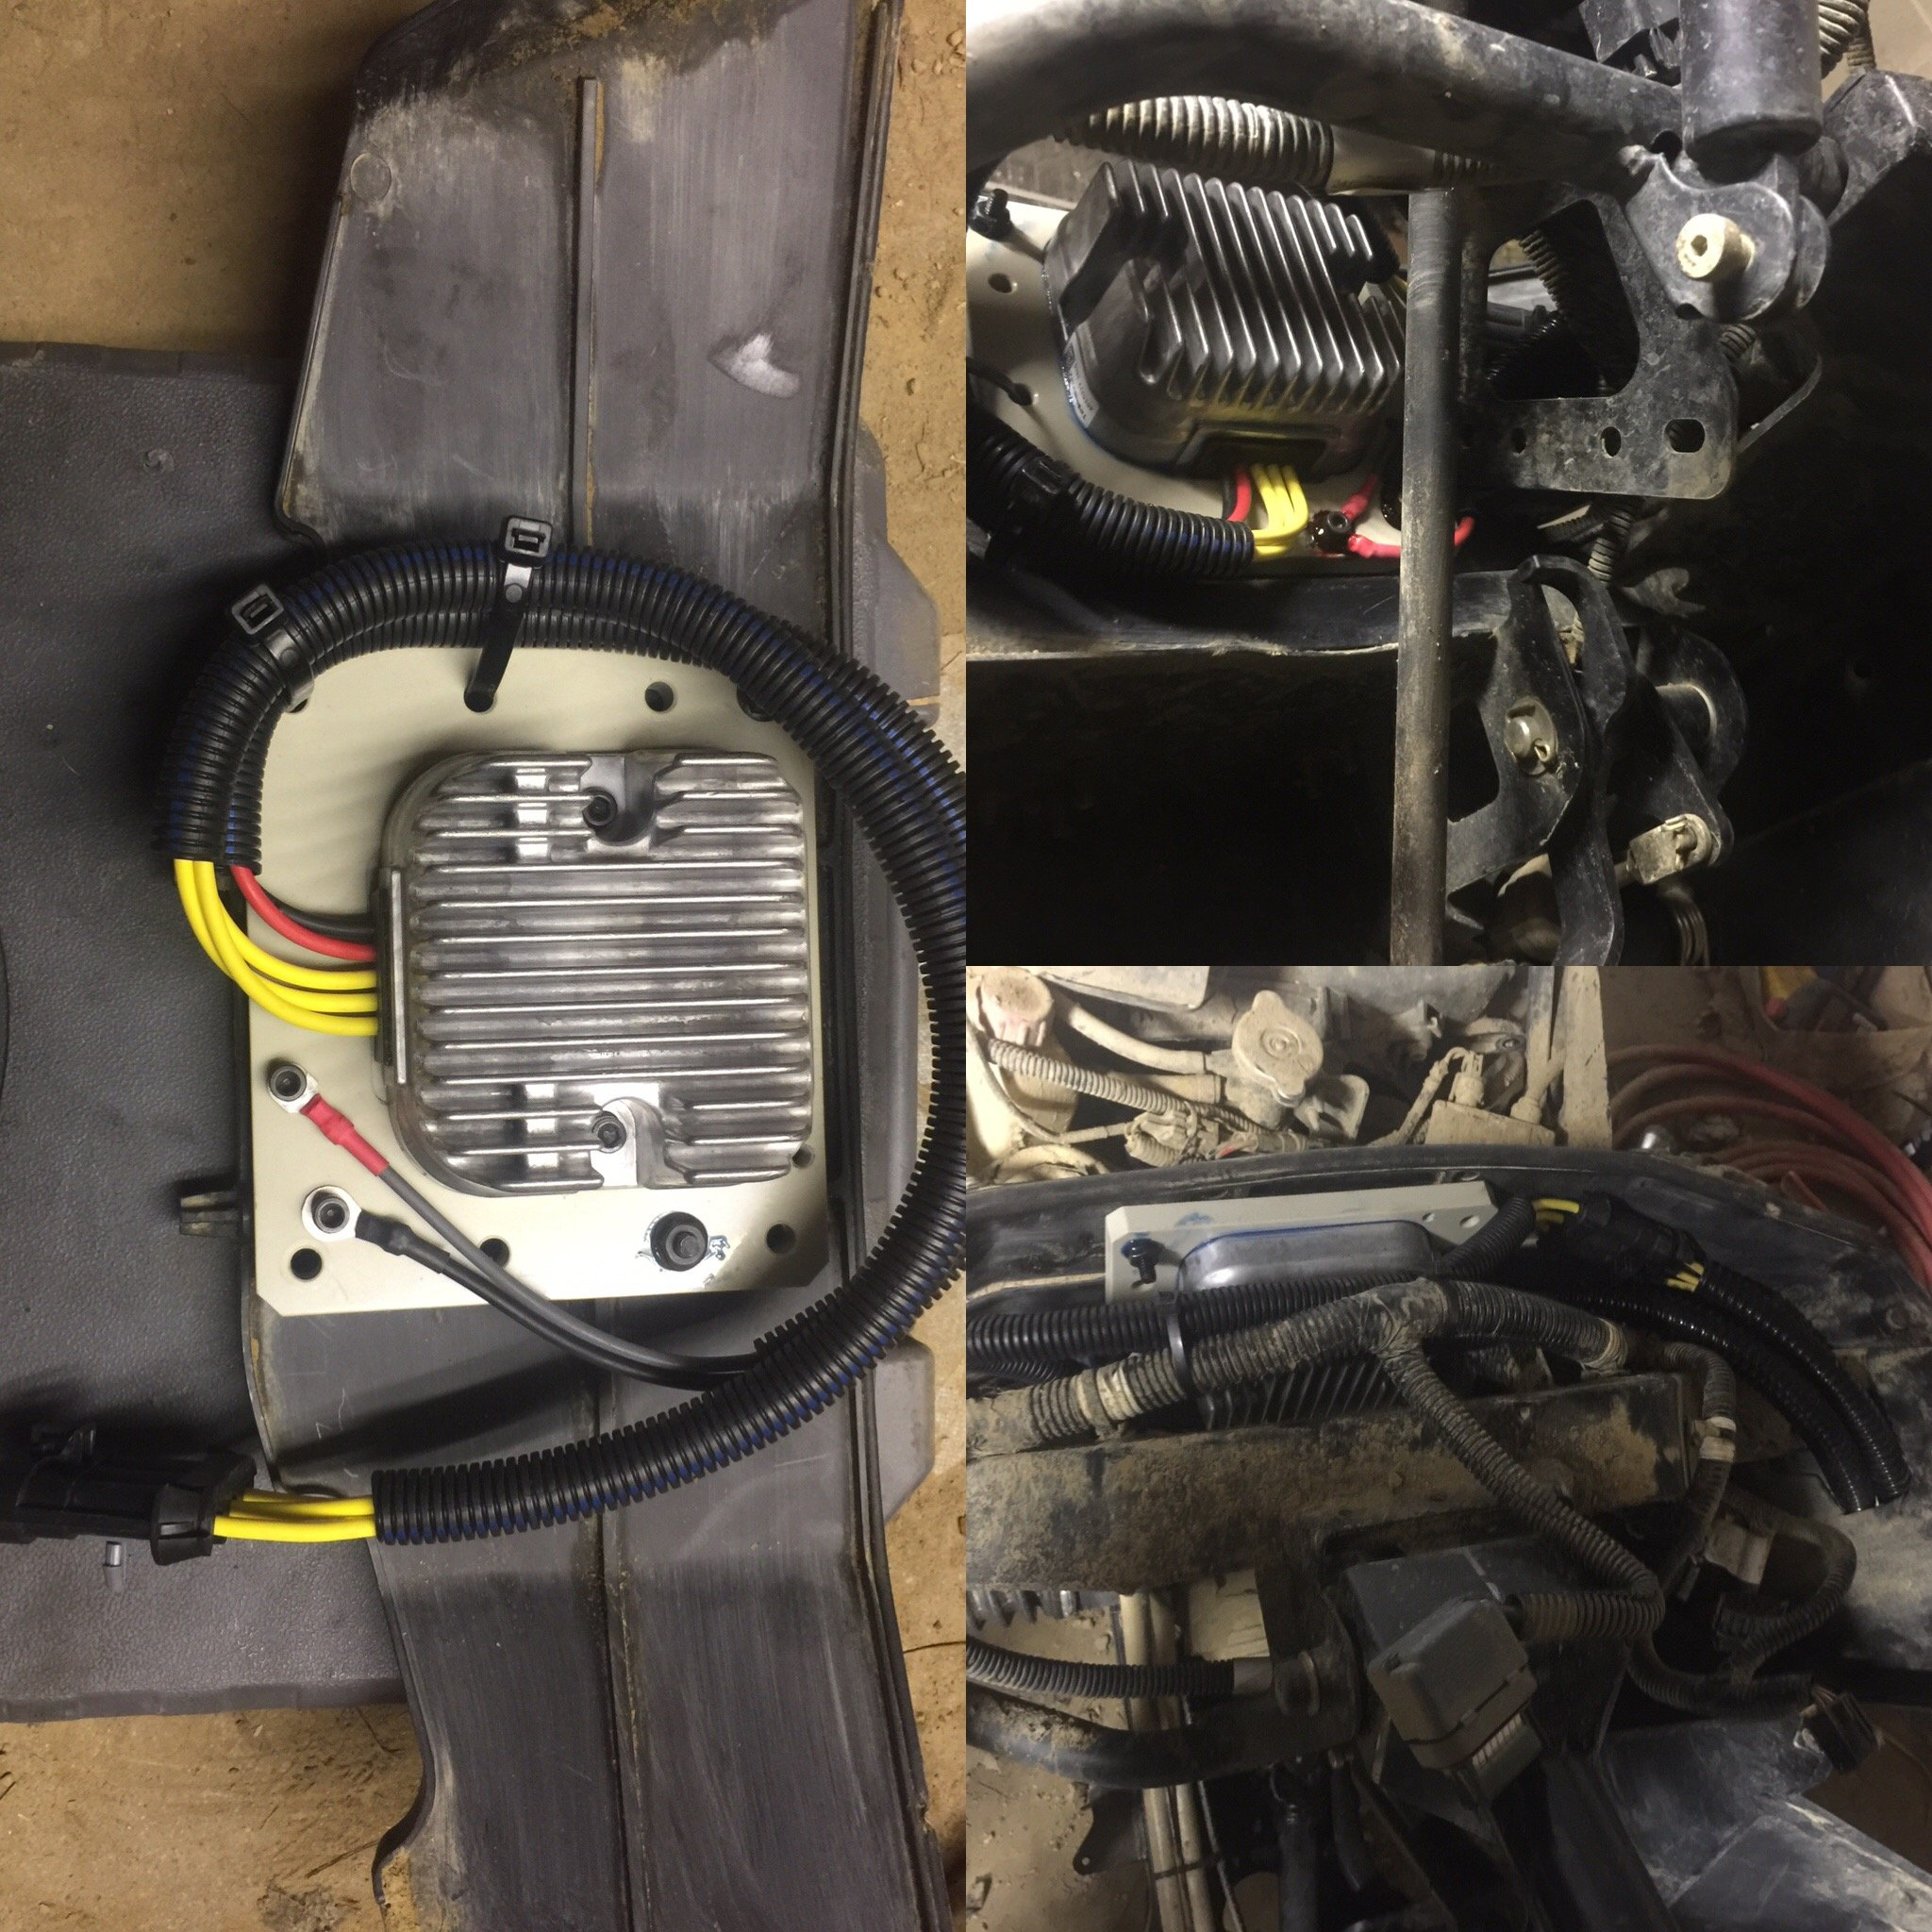 D Voltage Regulator Swap Img on polaris ranger 500 suspension